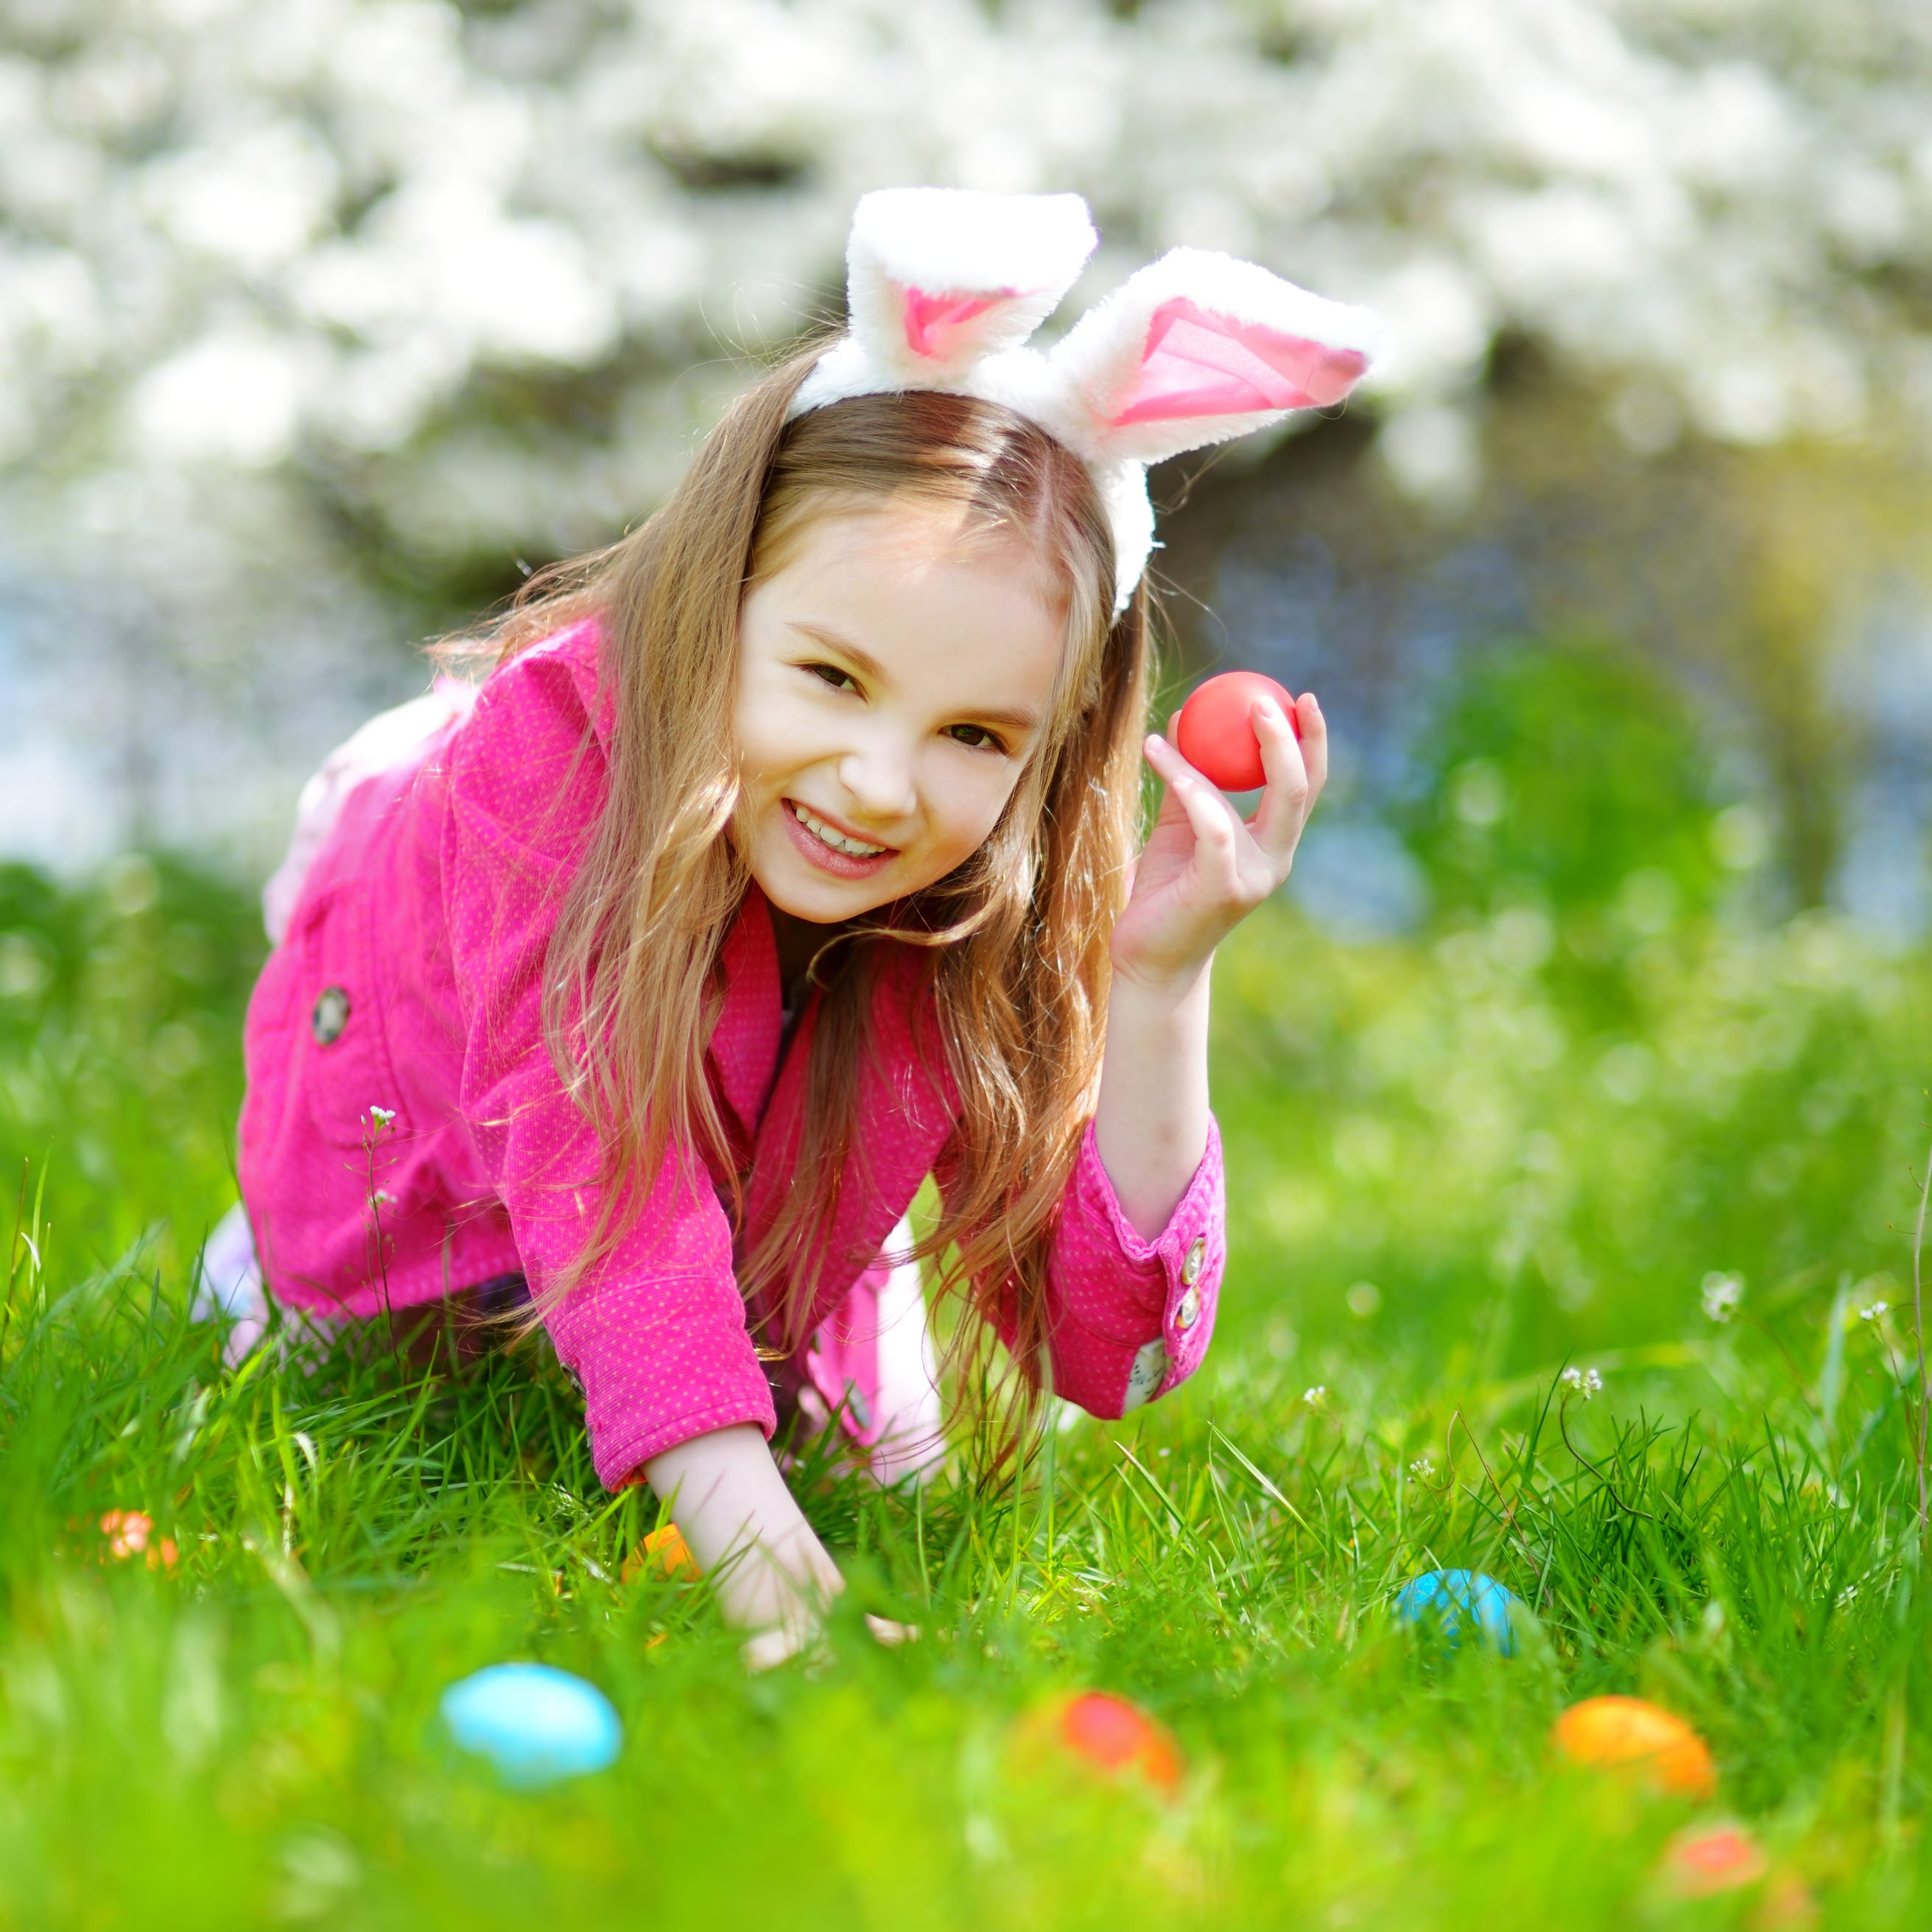 Neighbors briefs: Egg hunts, fishing expo and will consults